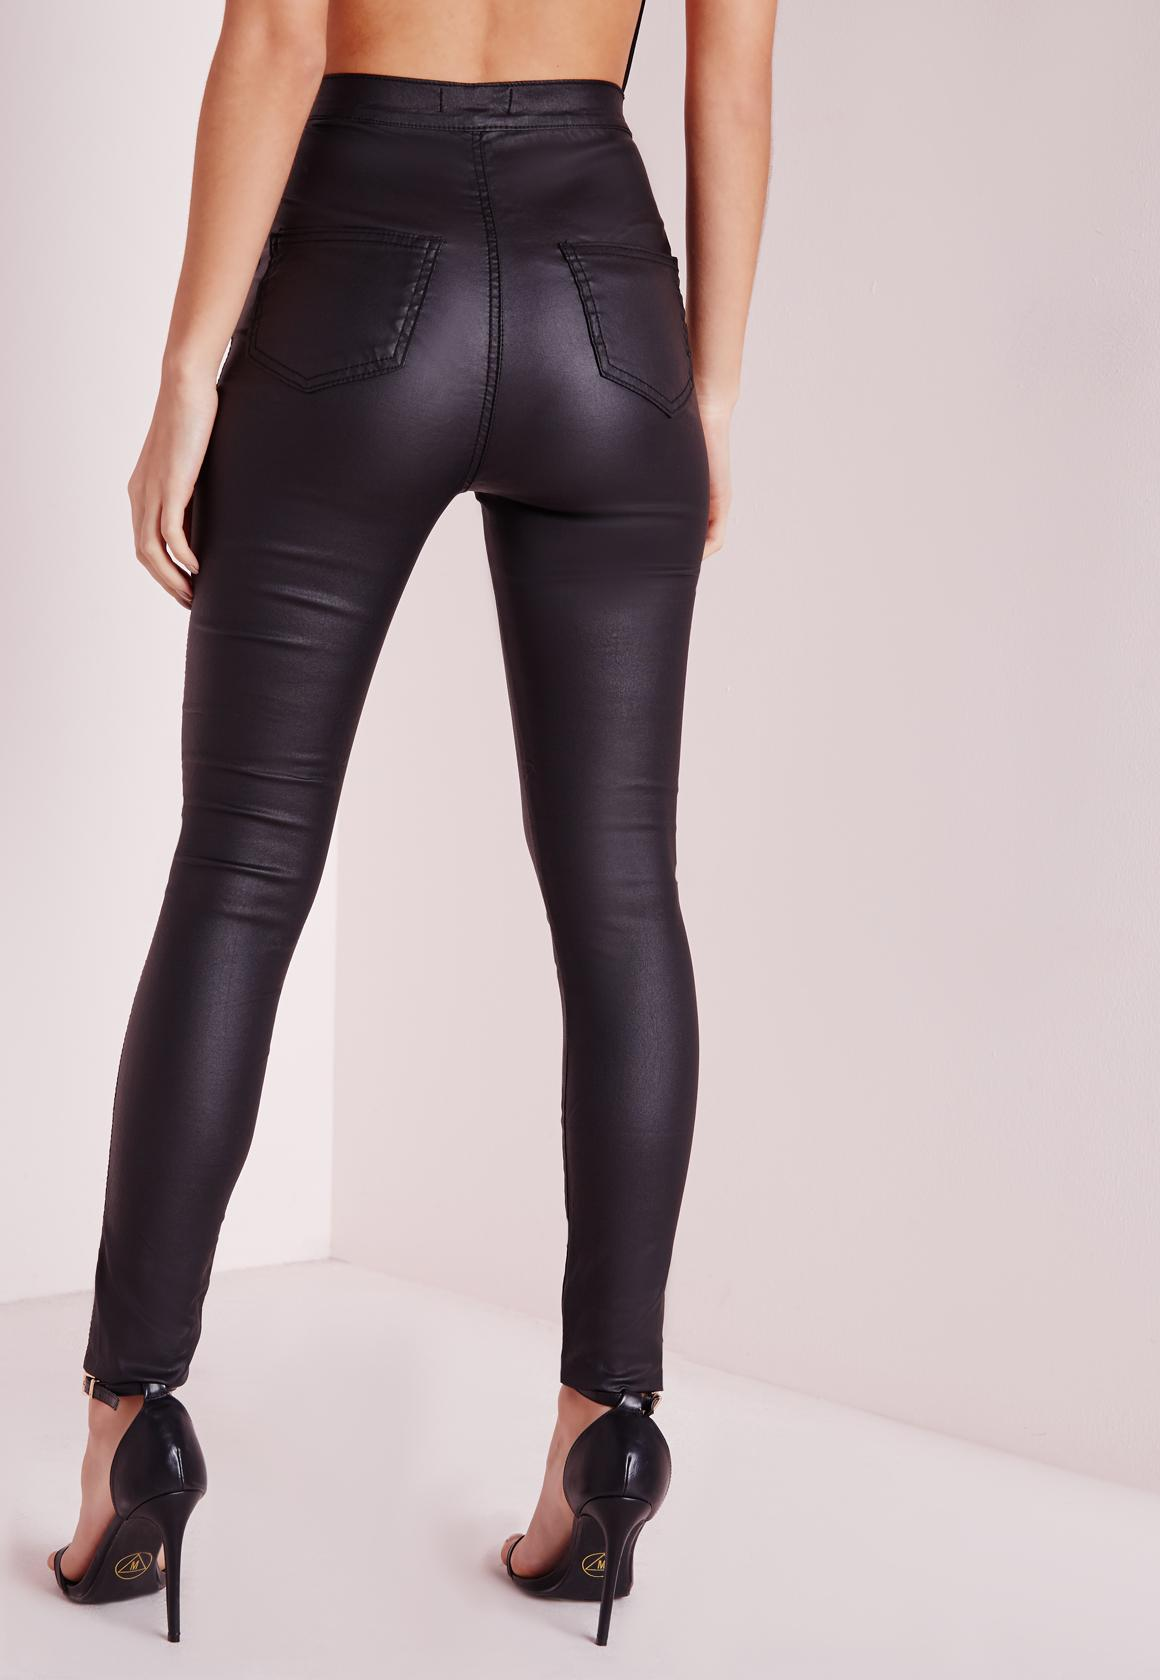 Vice Wet Look High Waisted Skinny Jeans Black Coated - Denim